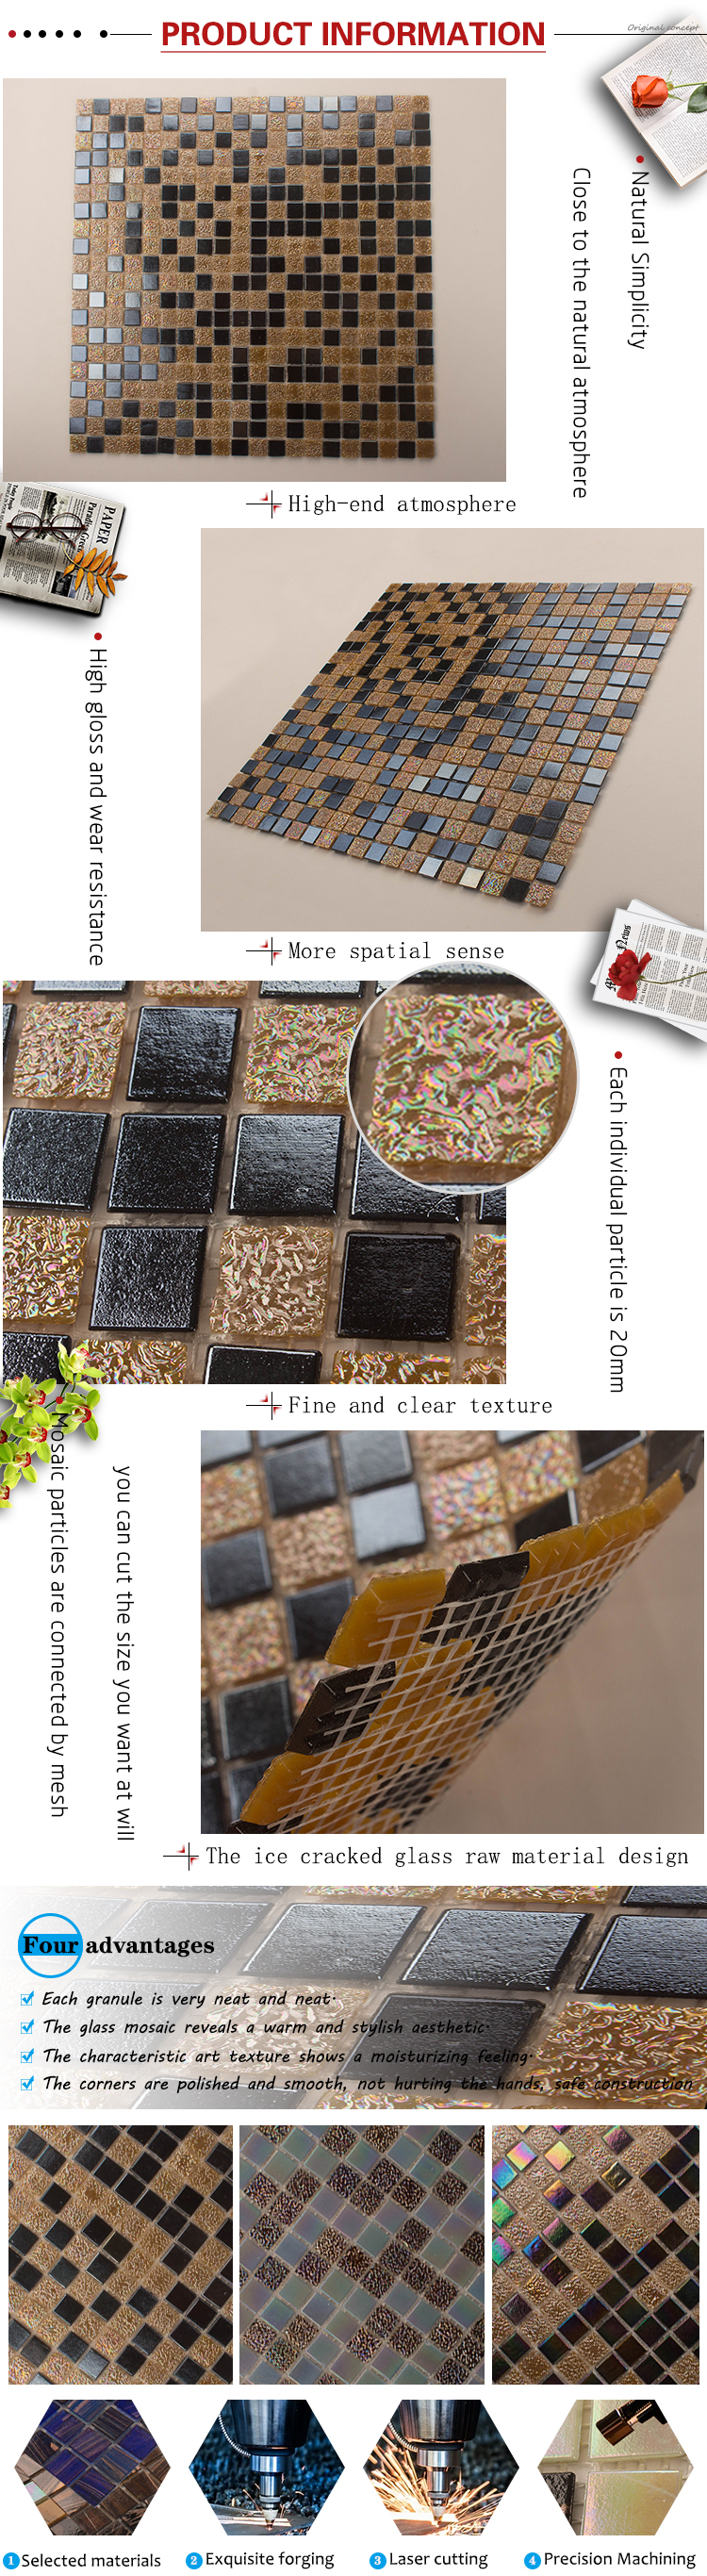 China foshan factory price 2mm swimming pool/bathroom golden wall glass mosaic